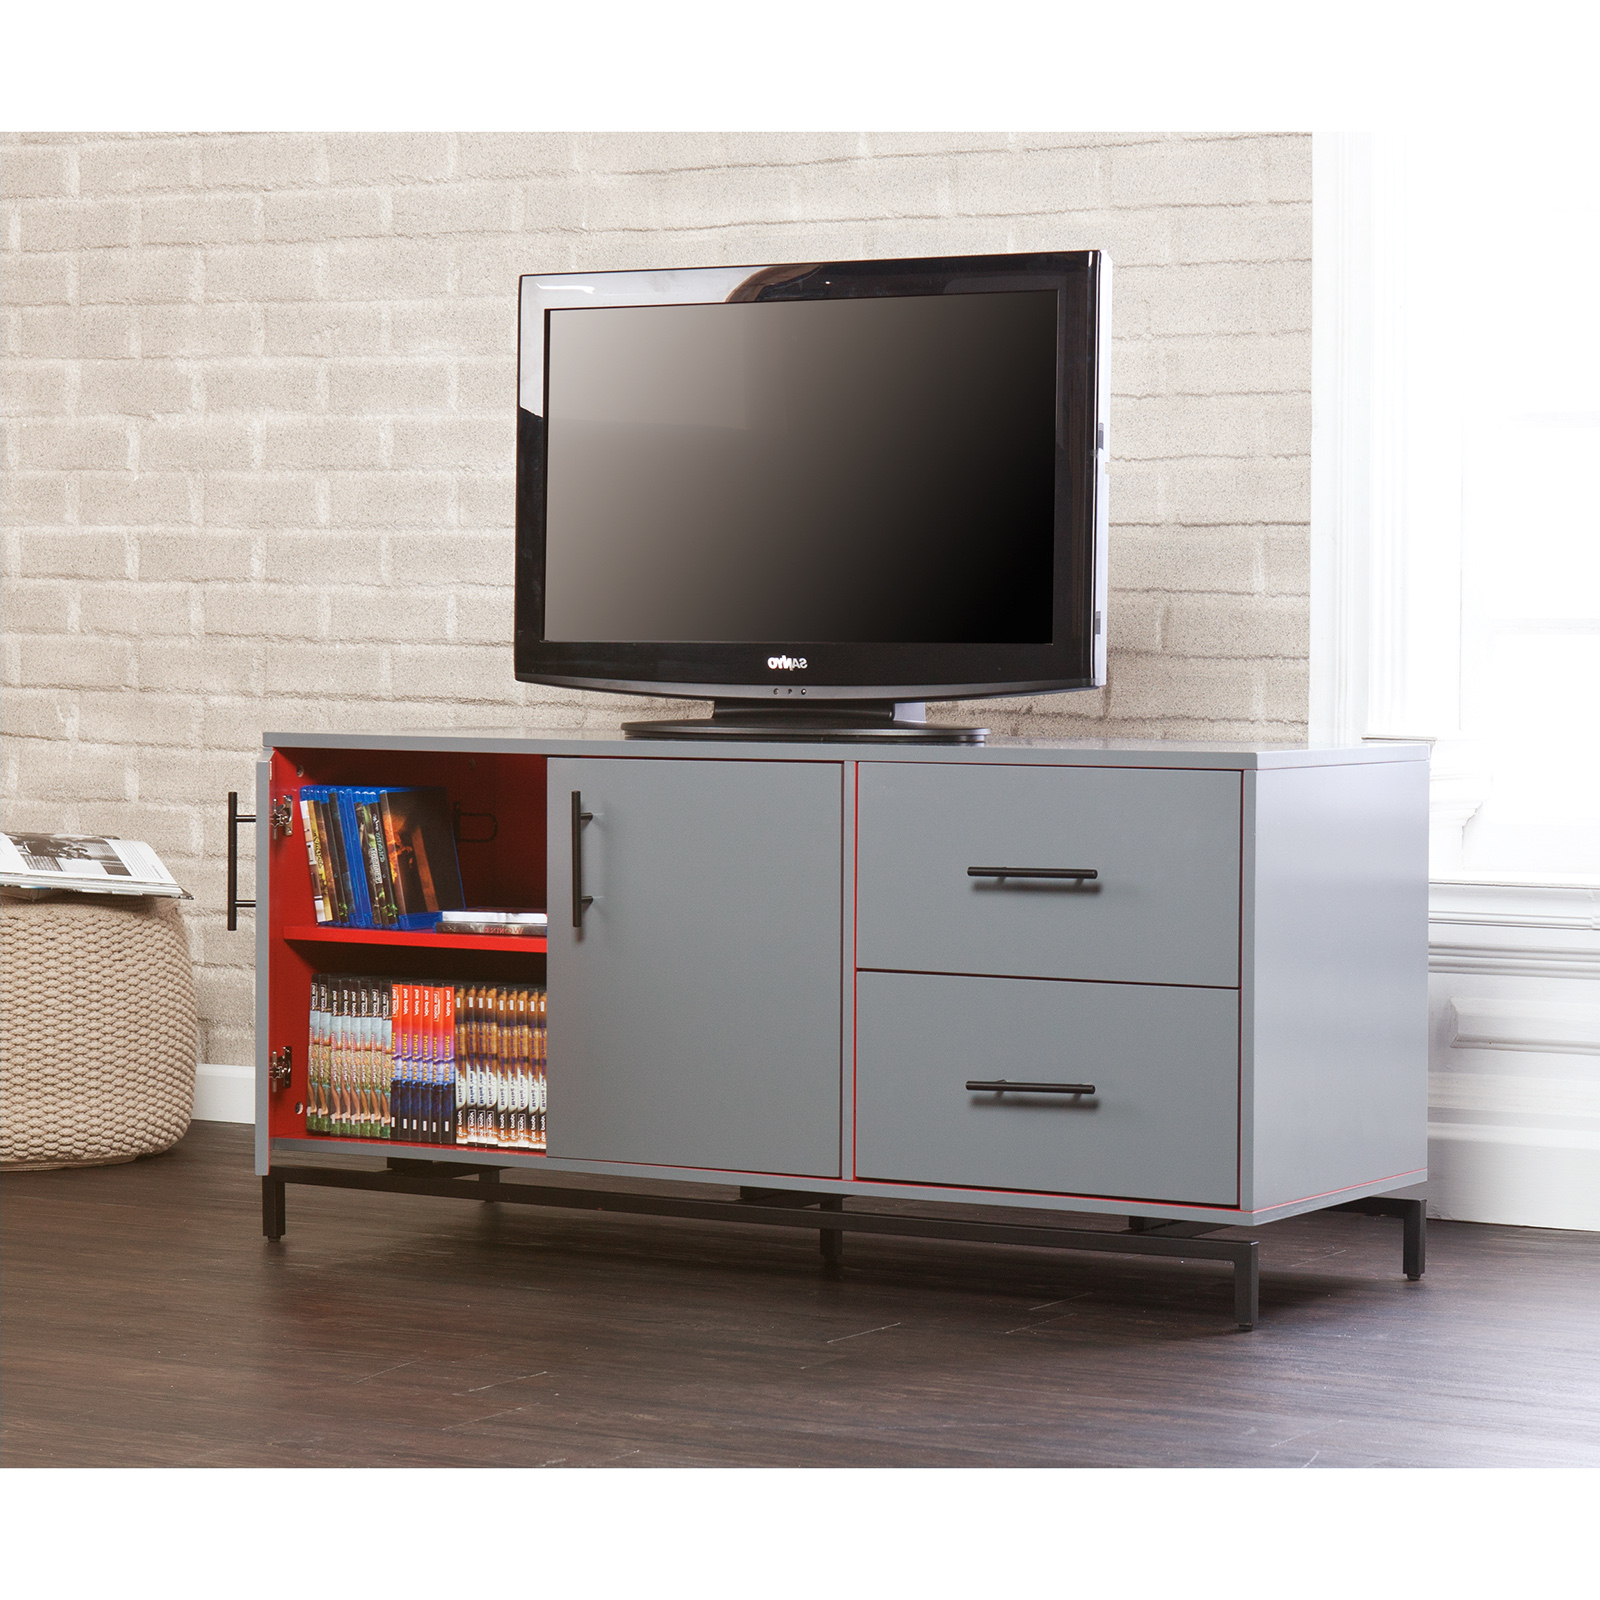 Delphi Grey Tv Stands Inside Well Known Holly & Martin Mahlias Tv Stand – Gray – Tv Stands At (View 7 of 25)